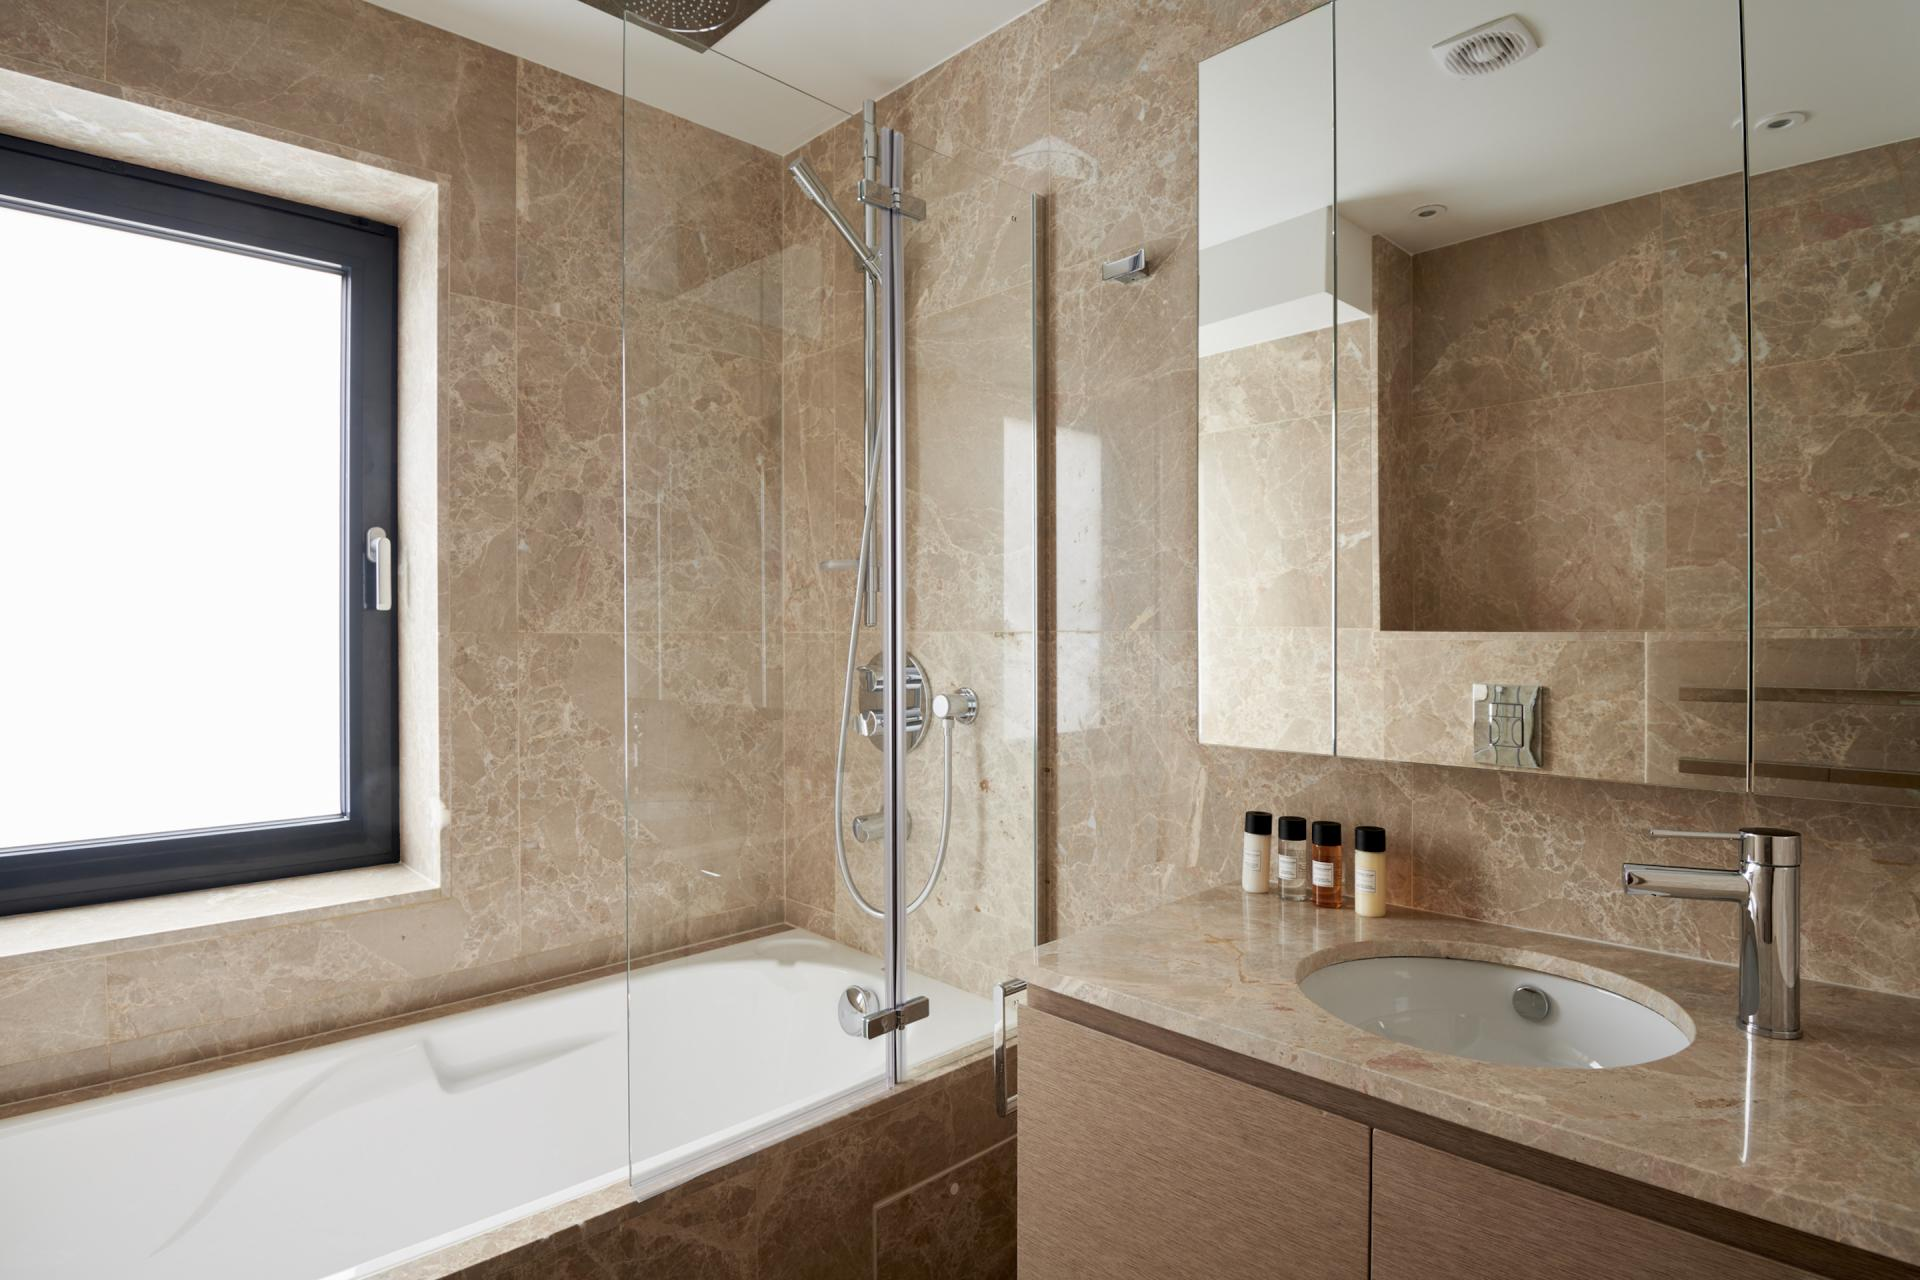 Bathroom at Maddox Suites, Carnaby, London - Citybase Apartments